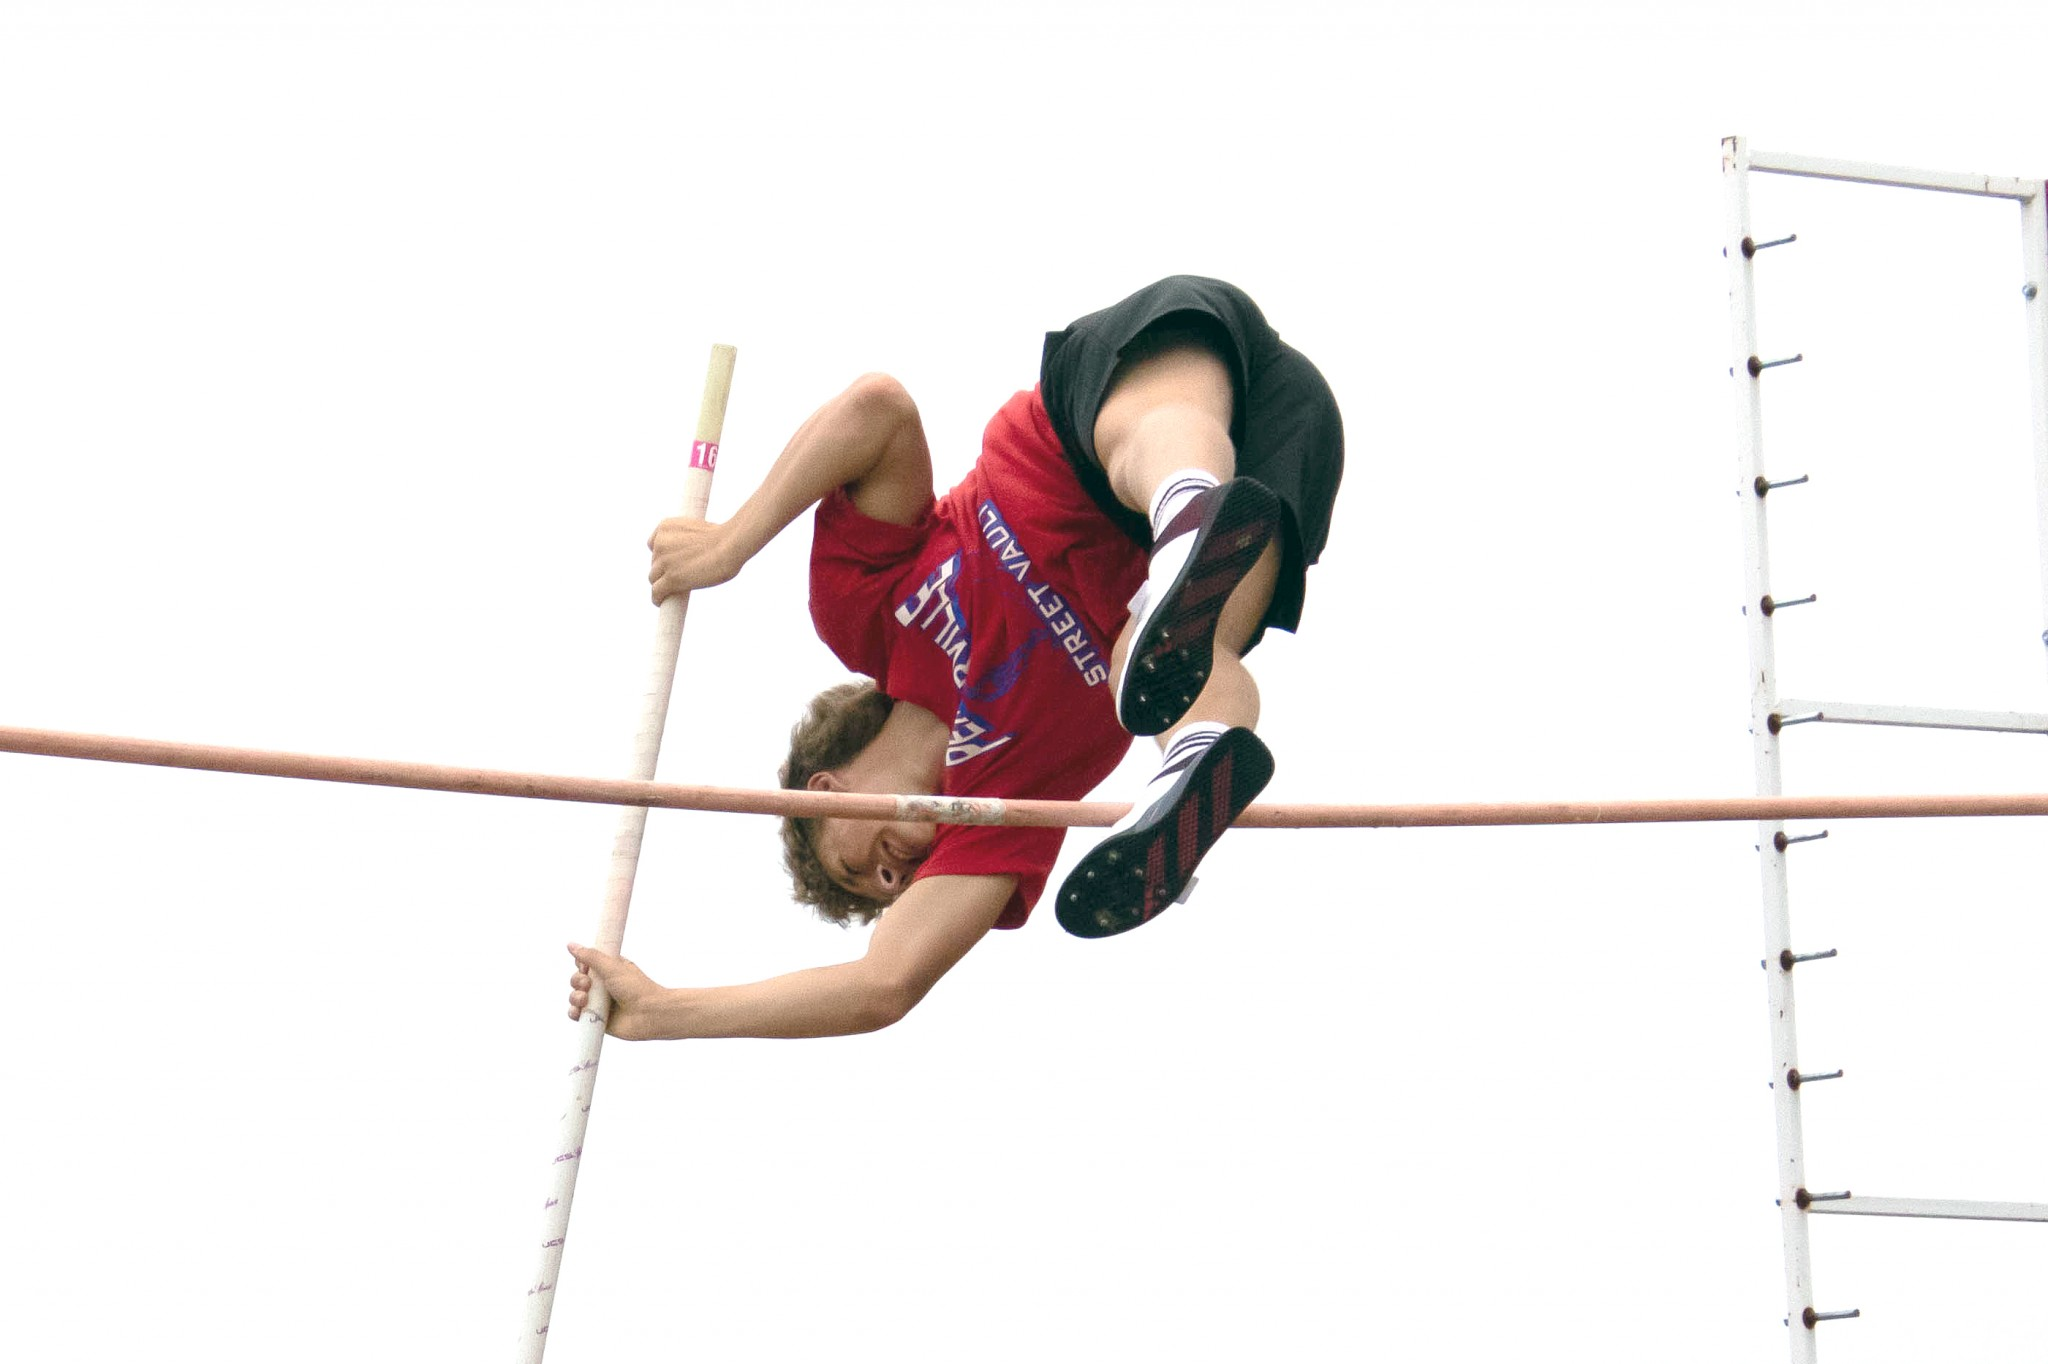 """At the Summer Fest track meet, Eastwood sophomore Dalton Hesselbart cleared 11-6 to place third. (Press photo by Harold Hamilton/<a href=""""http://www.HEHphotos.smugmug.com"""">www.HEHphotos.smugmug.com</a>)"""